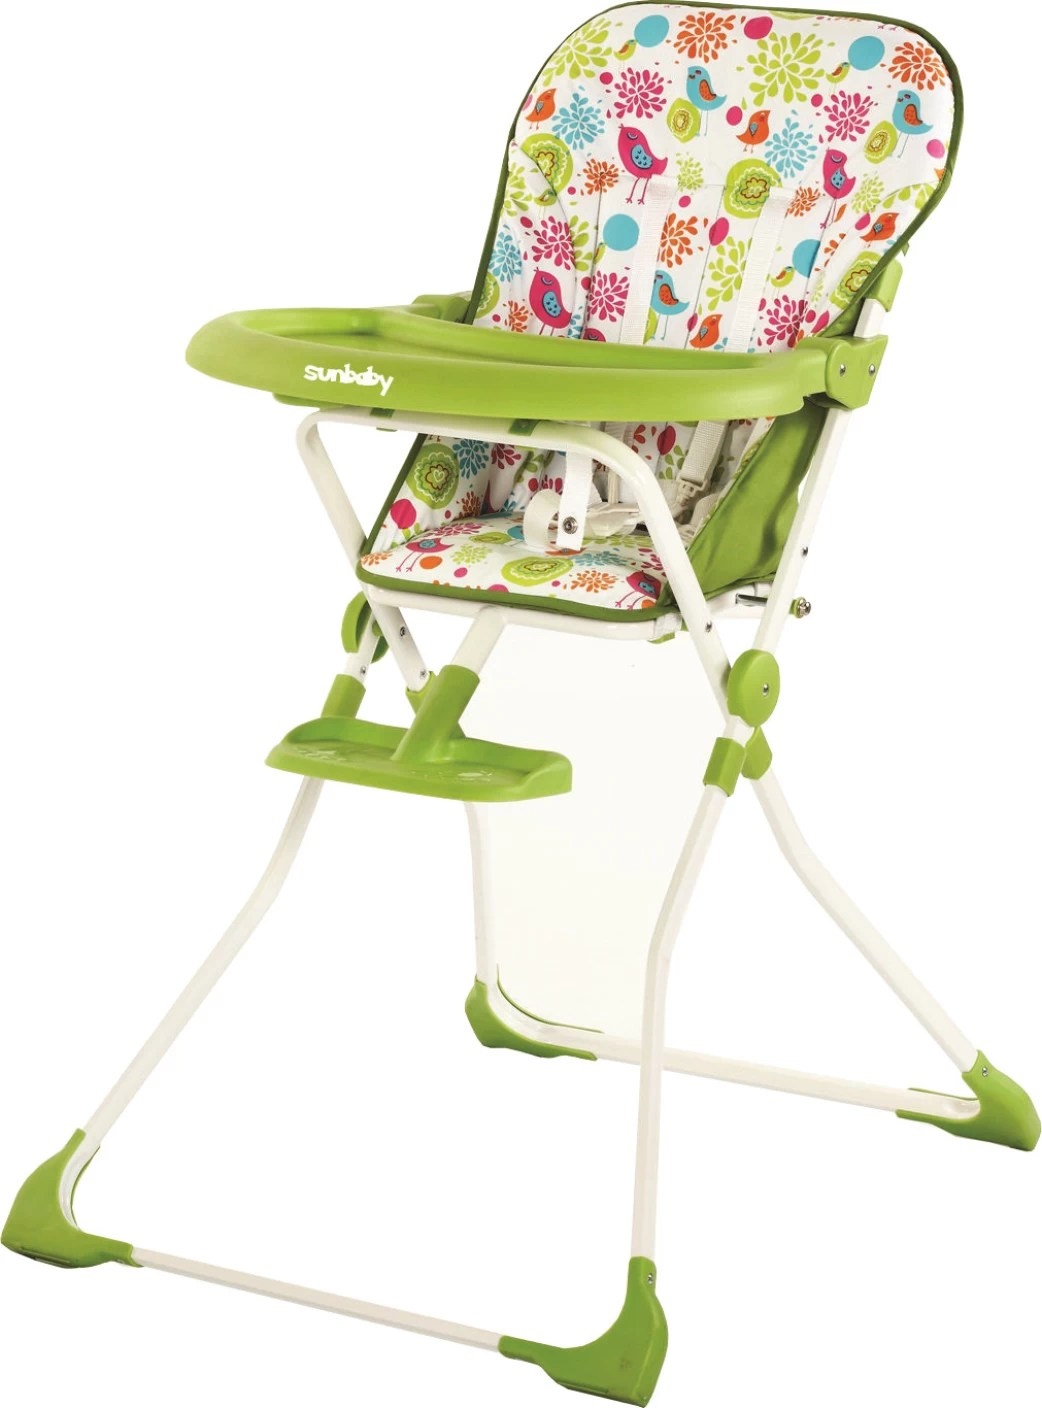 high chair buy baby plus size beach chairs sunbaby delite deluxe care products